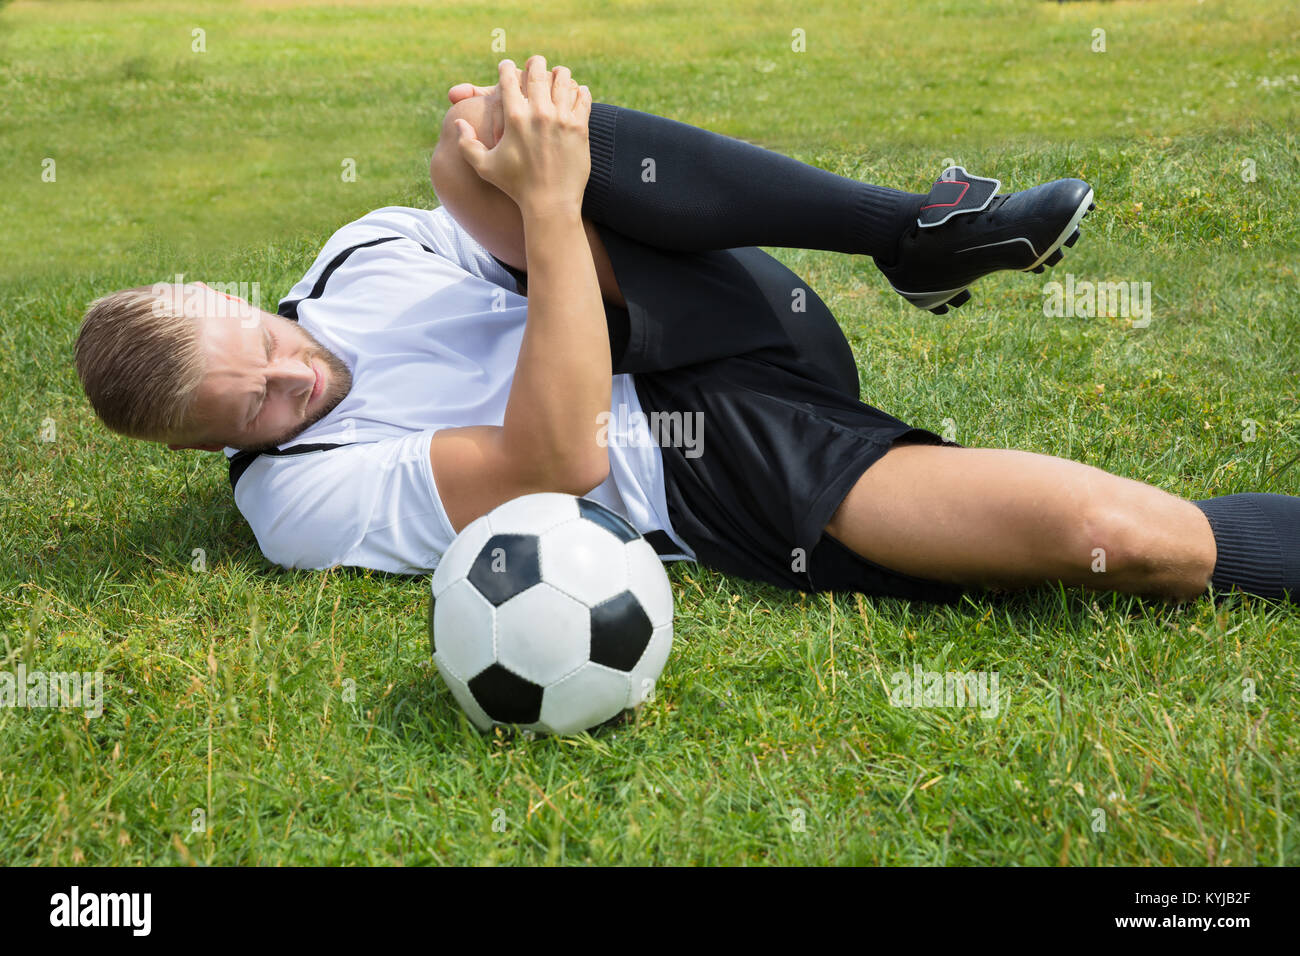 knee injury football stock photos  u0026 knee injury football stock images